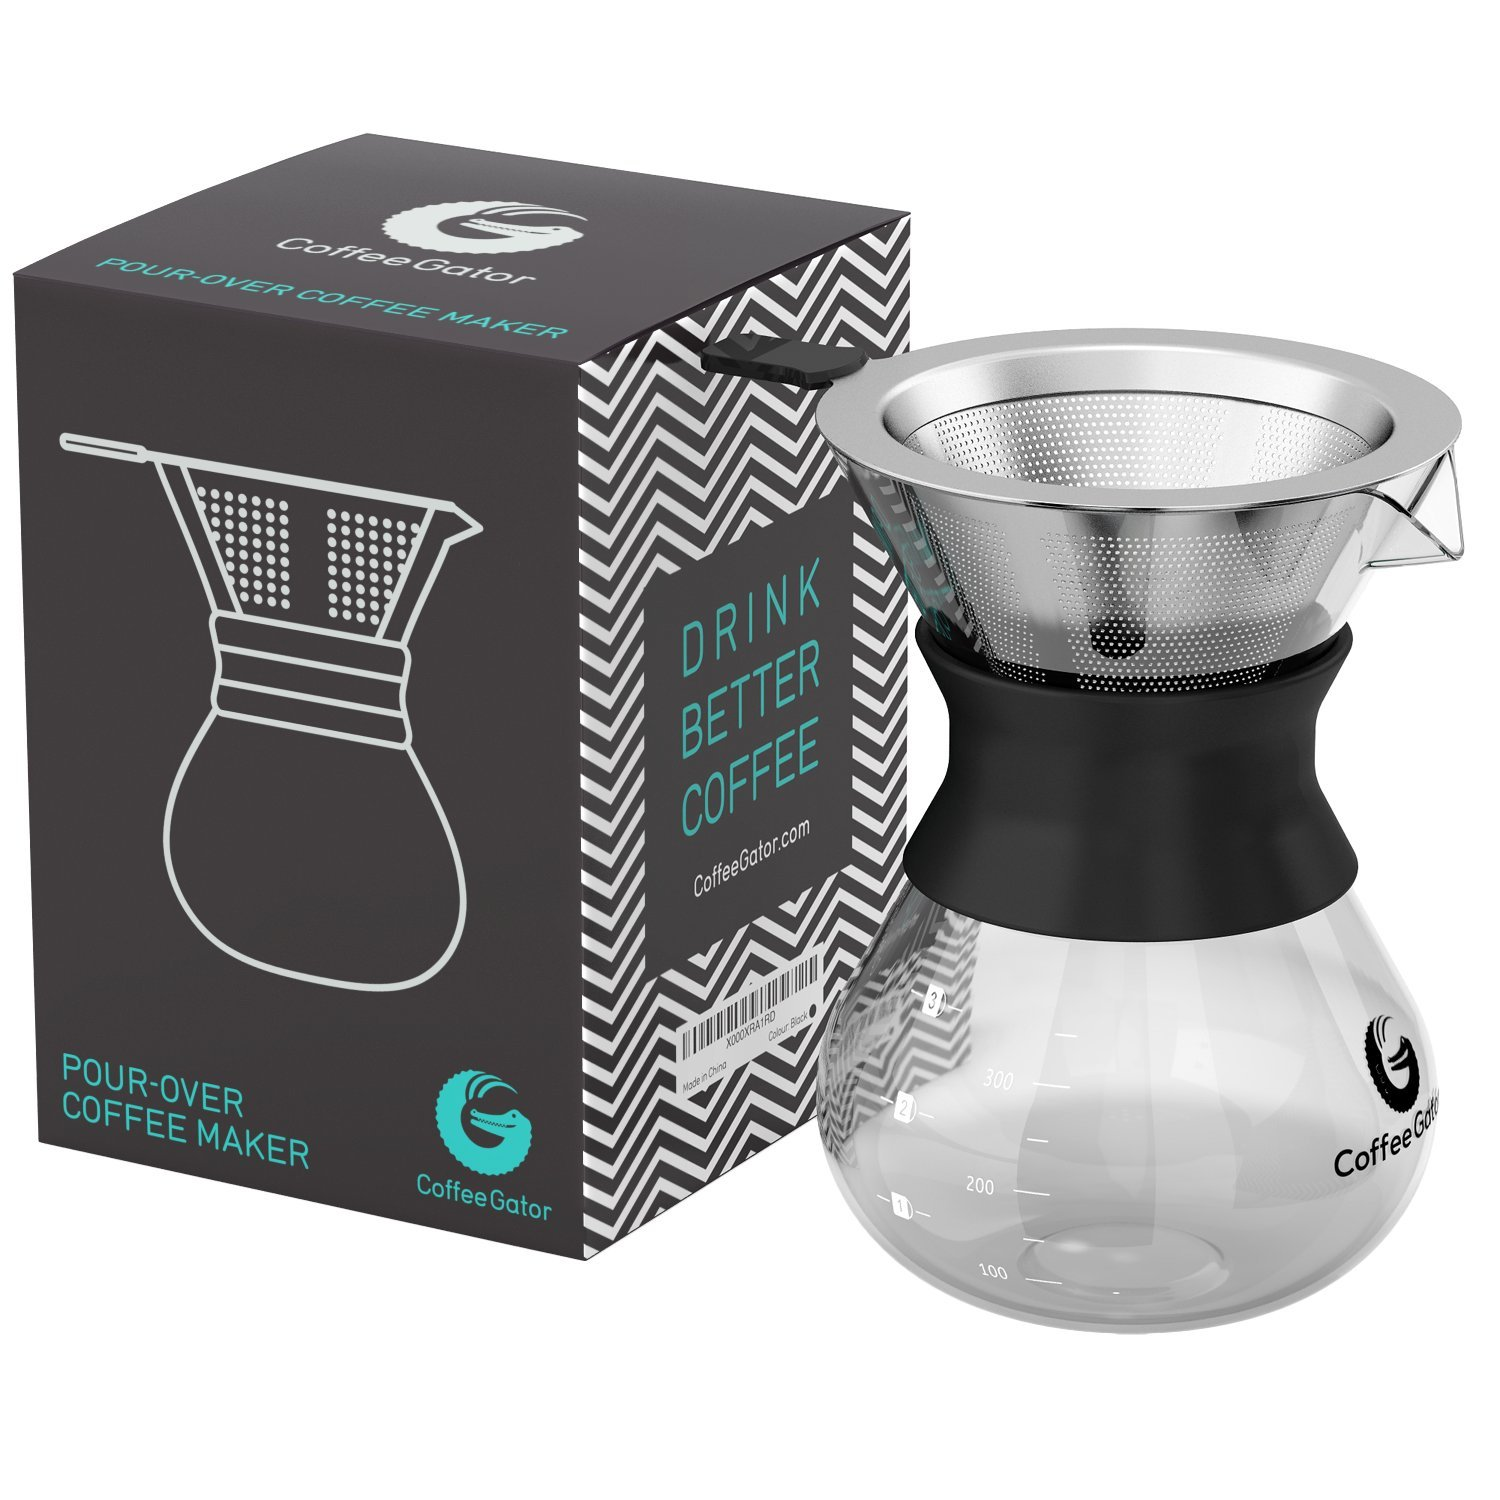 Coffee Gator Pour Over Brewer – Unlock Flavor with Paperless Filter and Carafe – 10.5floz